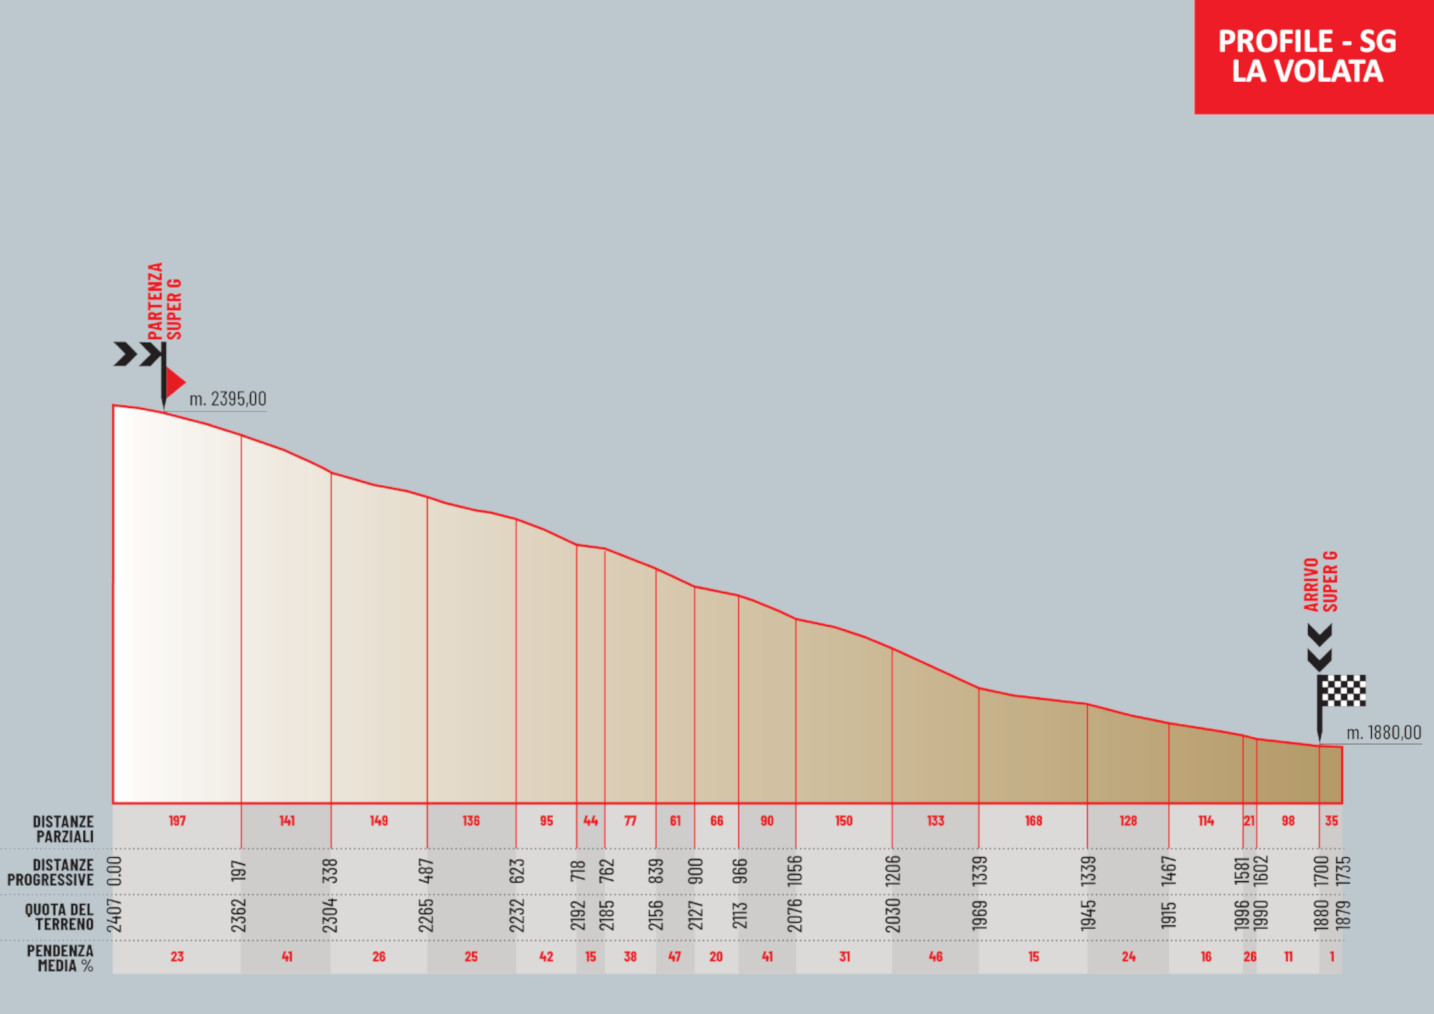 The race venue - La VolatA - Profile SG